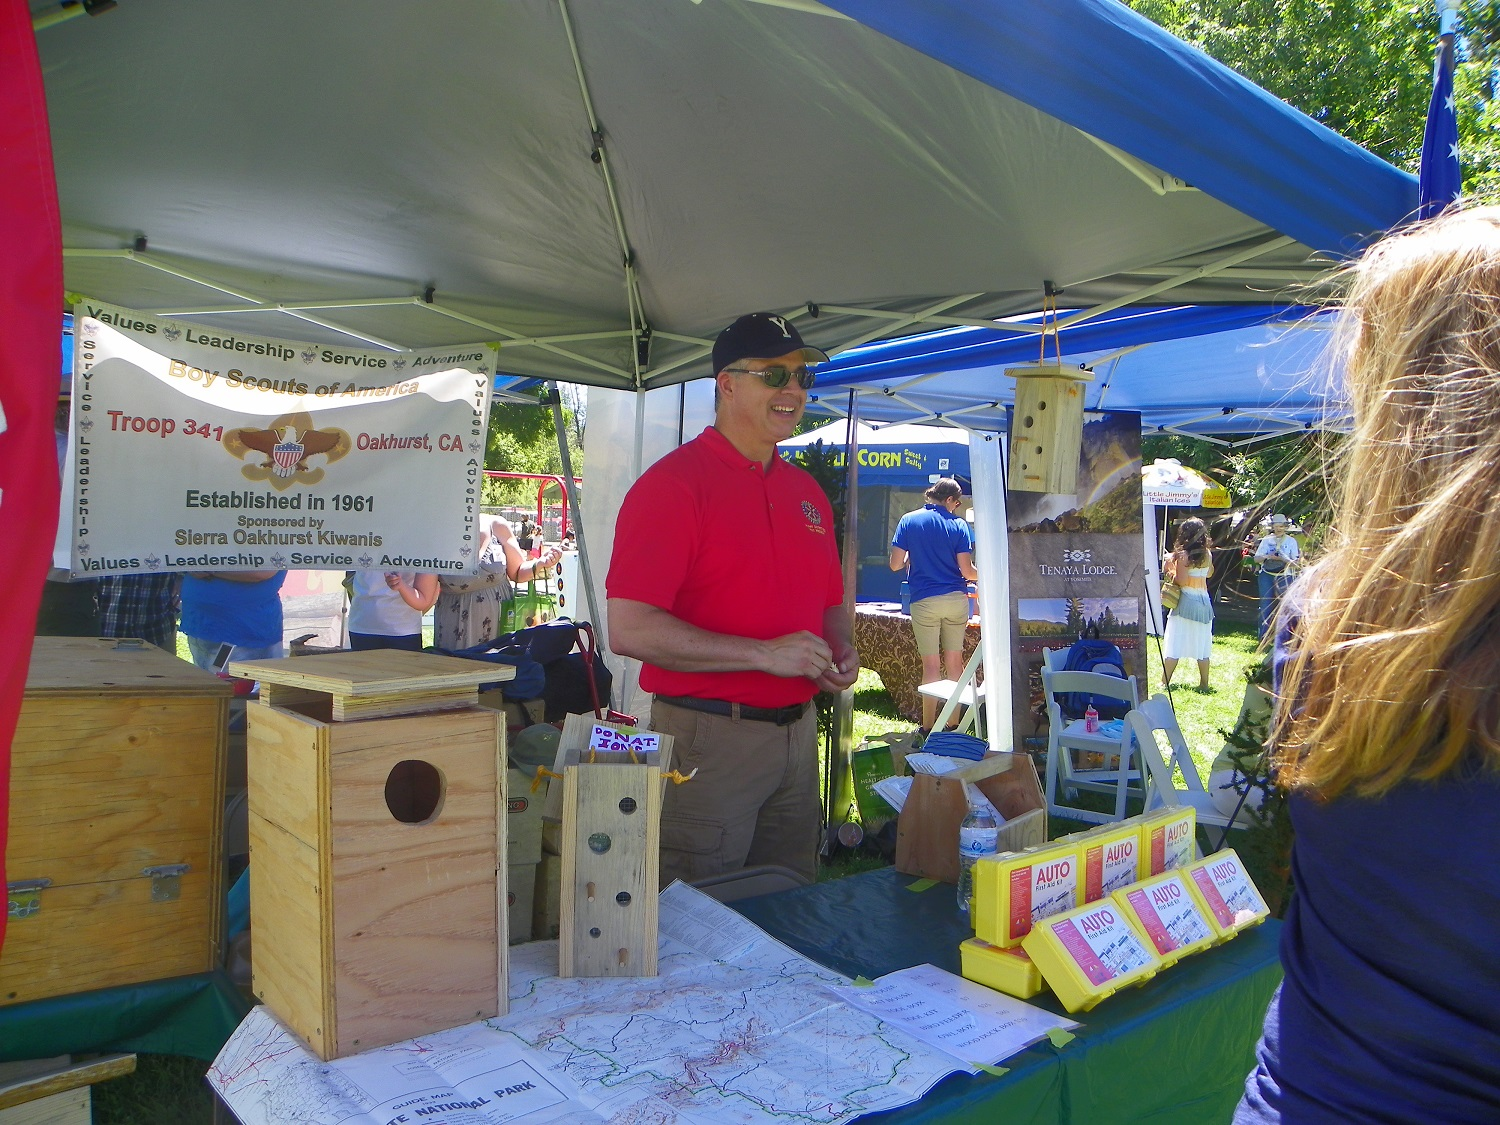 Yos Fest Tony MacLean at Boy Scout Troop 341 booth - photo by Kellie Flanagan